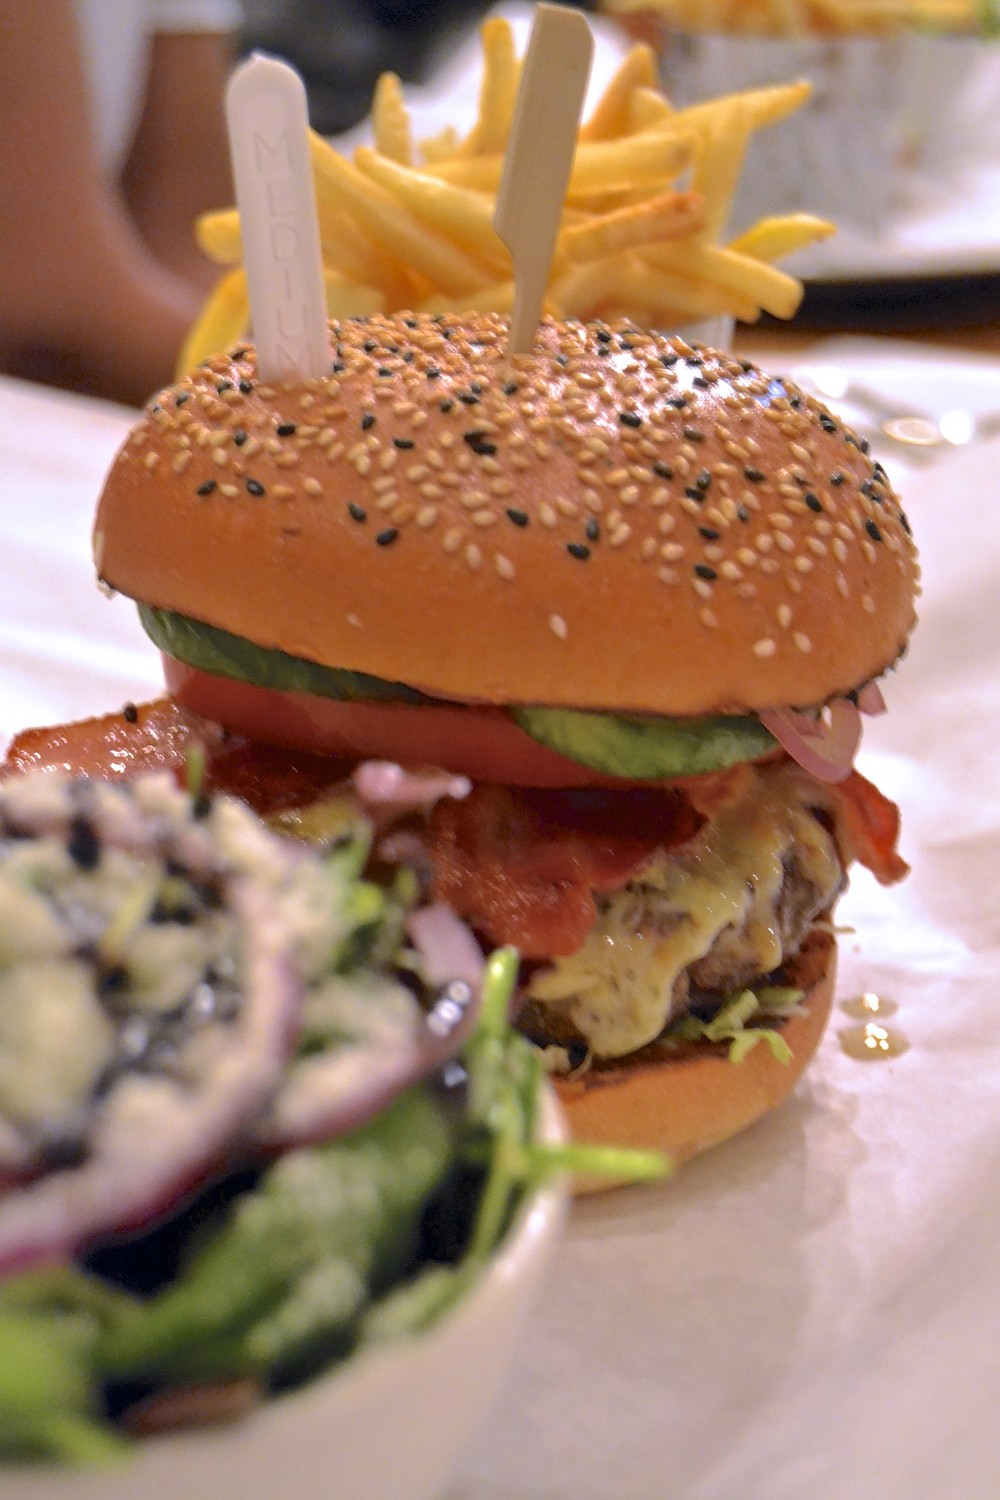 Honest London Burger and Lobster review soho cheeseburger